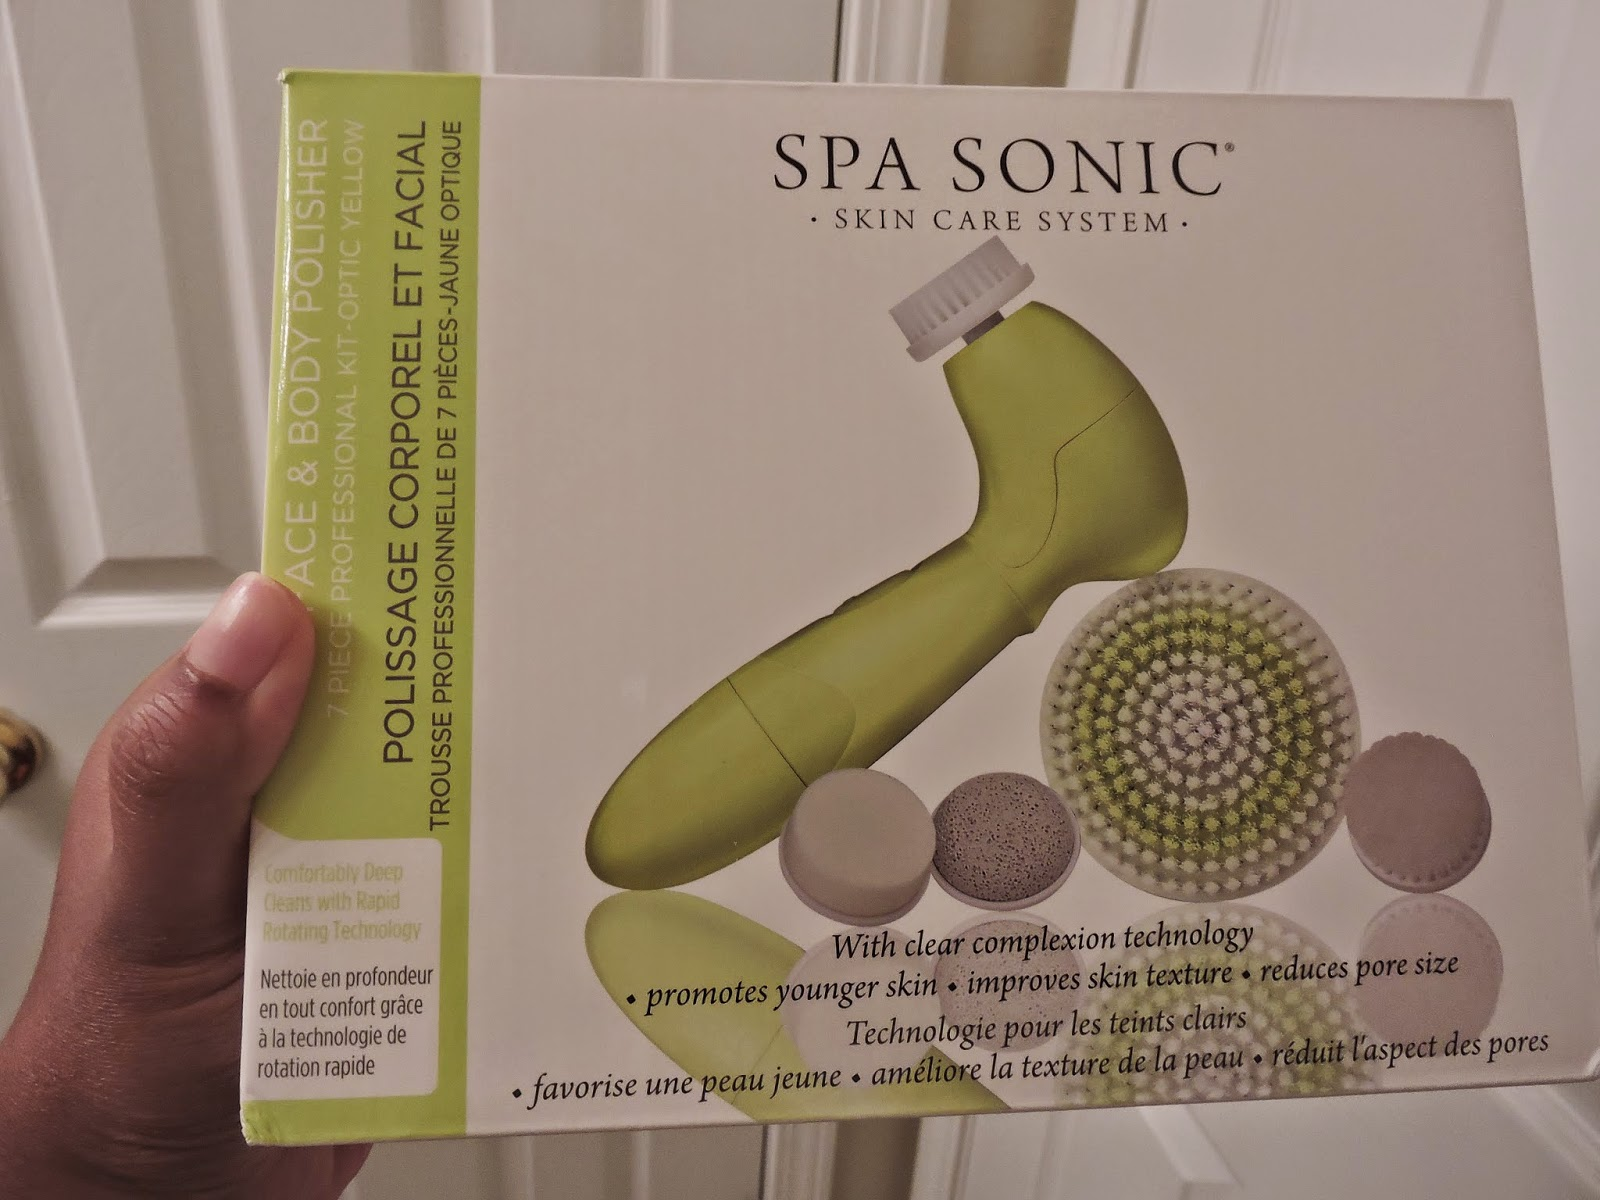 Spa Sonic Skin Care System Review #SpaSonic via www.Productreviewmom.com